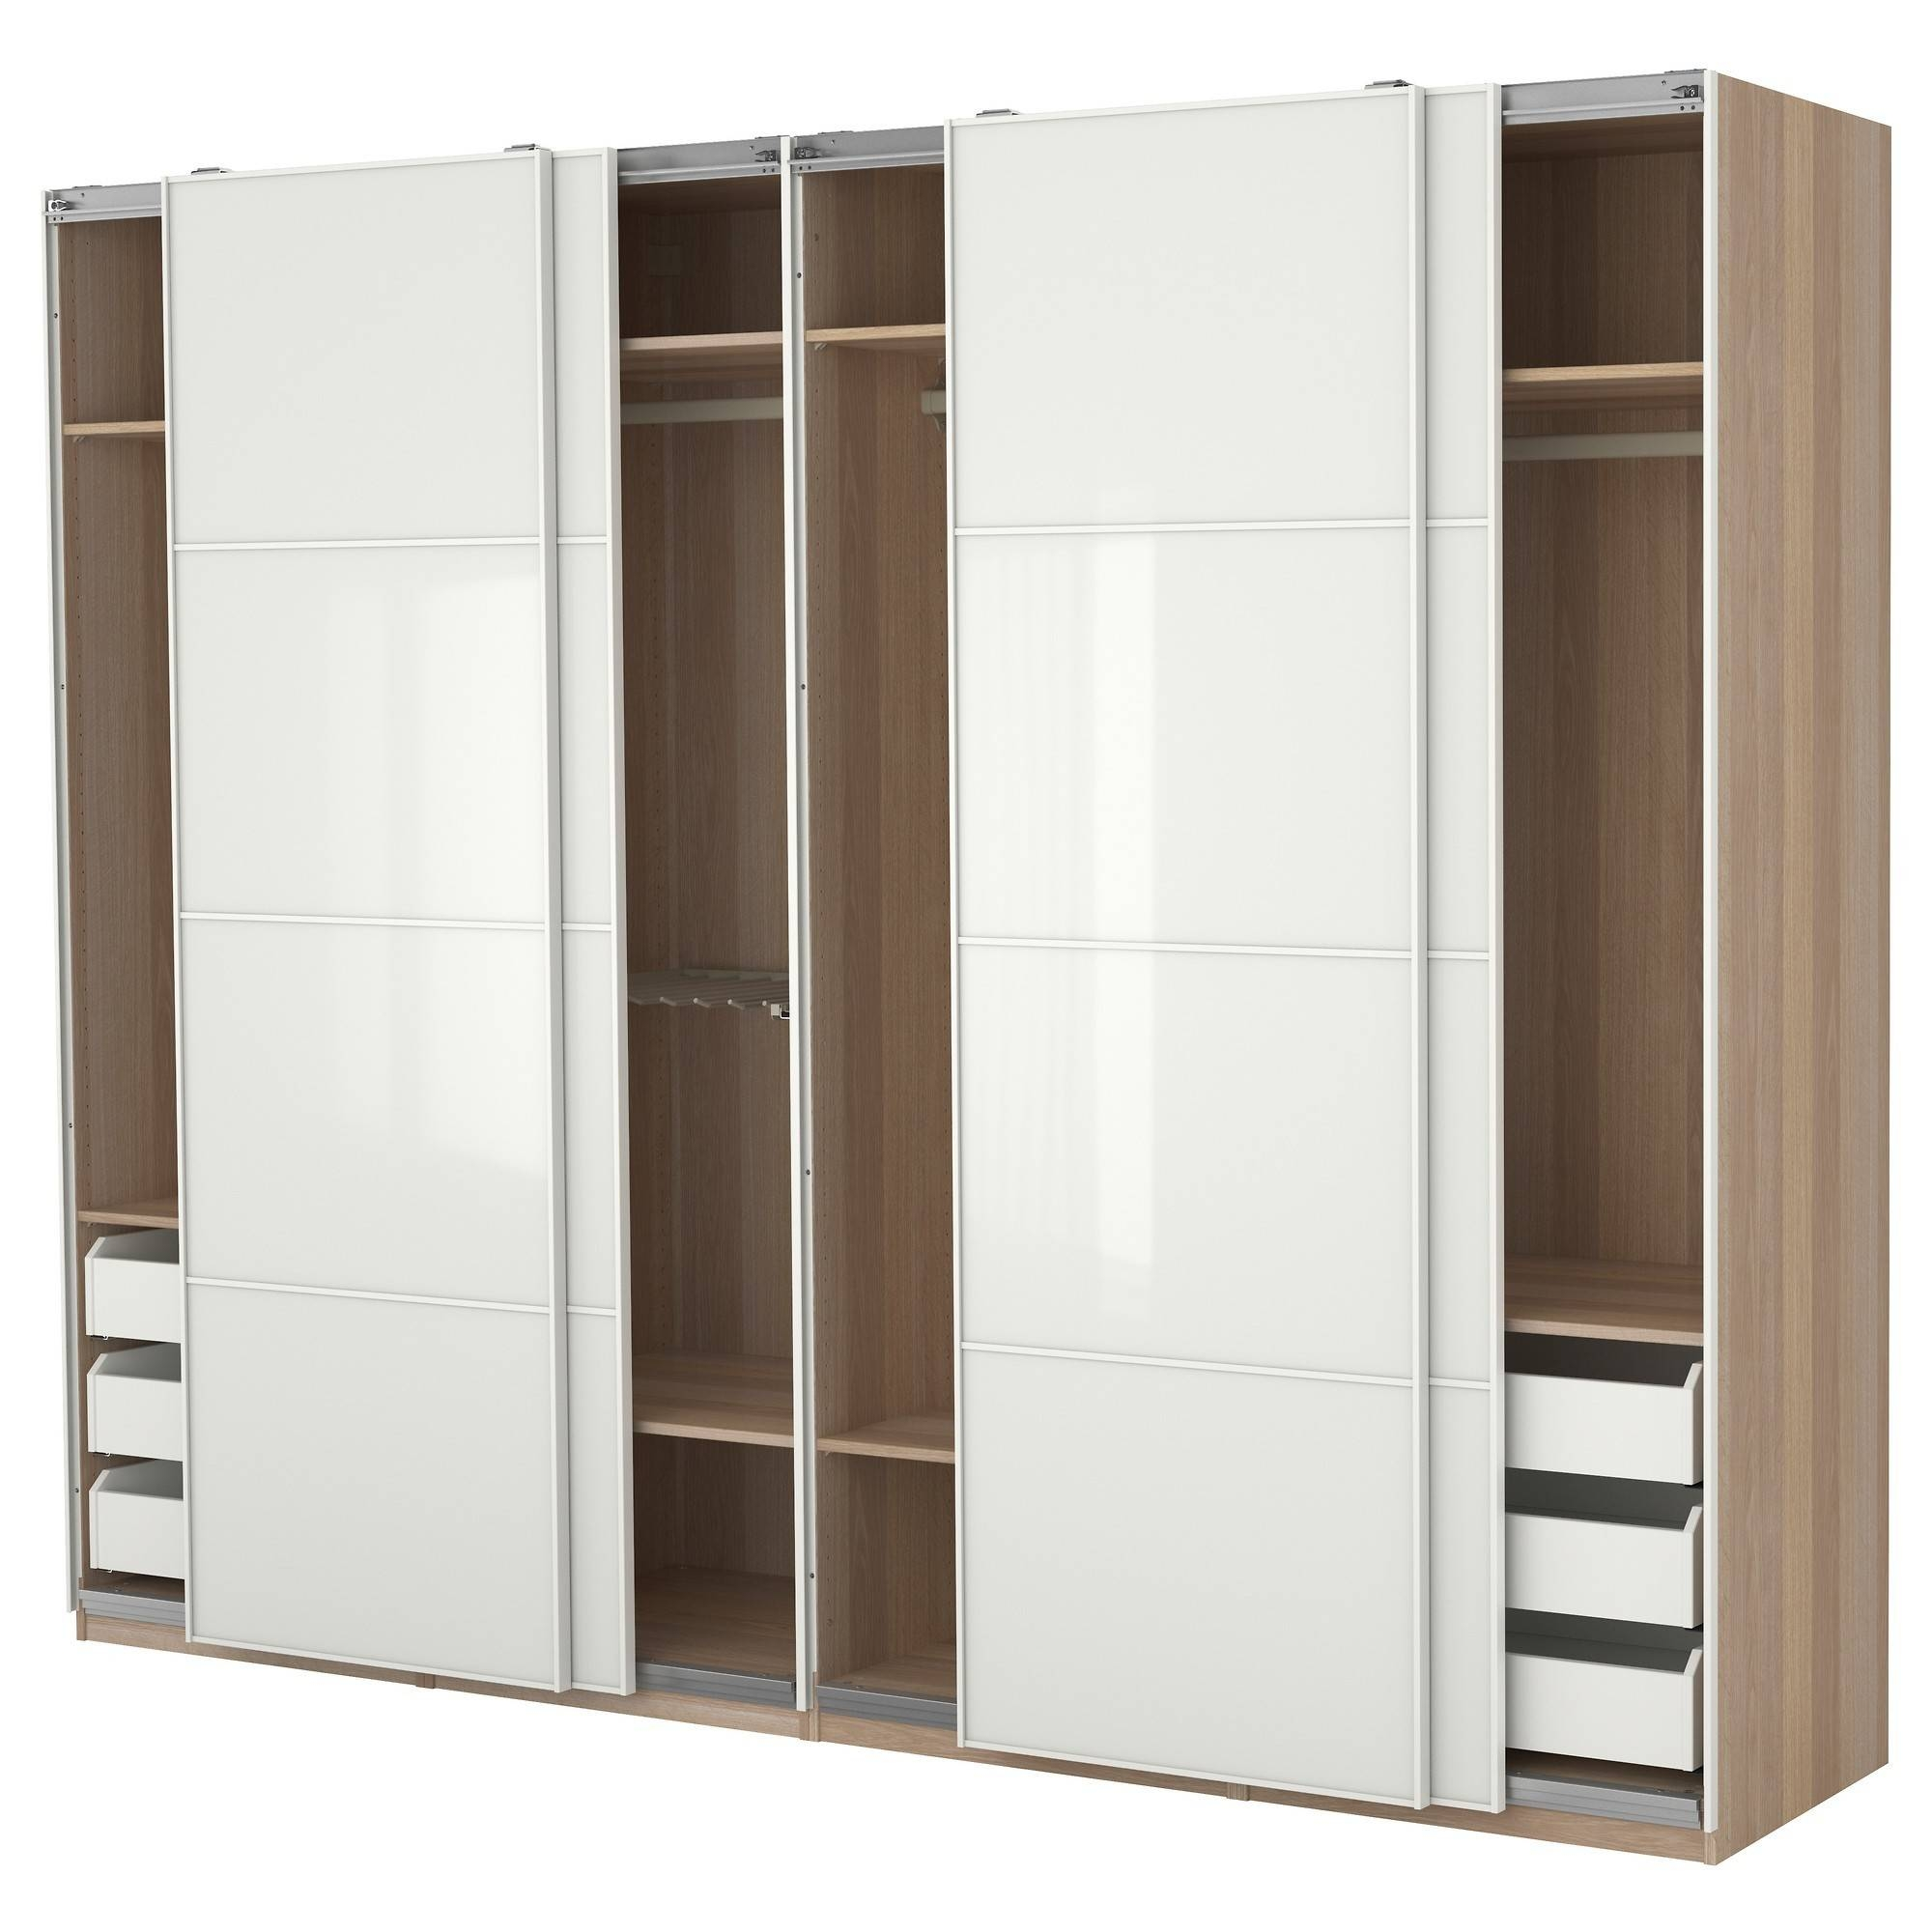 Furniture: Fancy Wardrobe Armoire For Wardrobe Organizer Idea In Wardrobe With Drawers And Shelves (View 11 of 30)